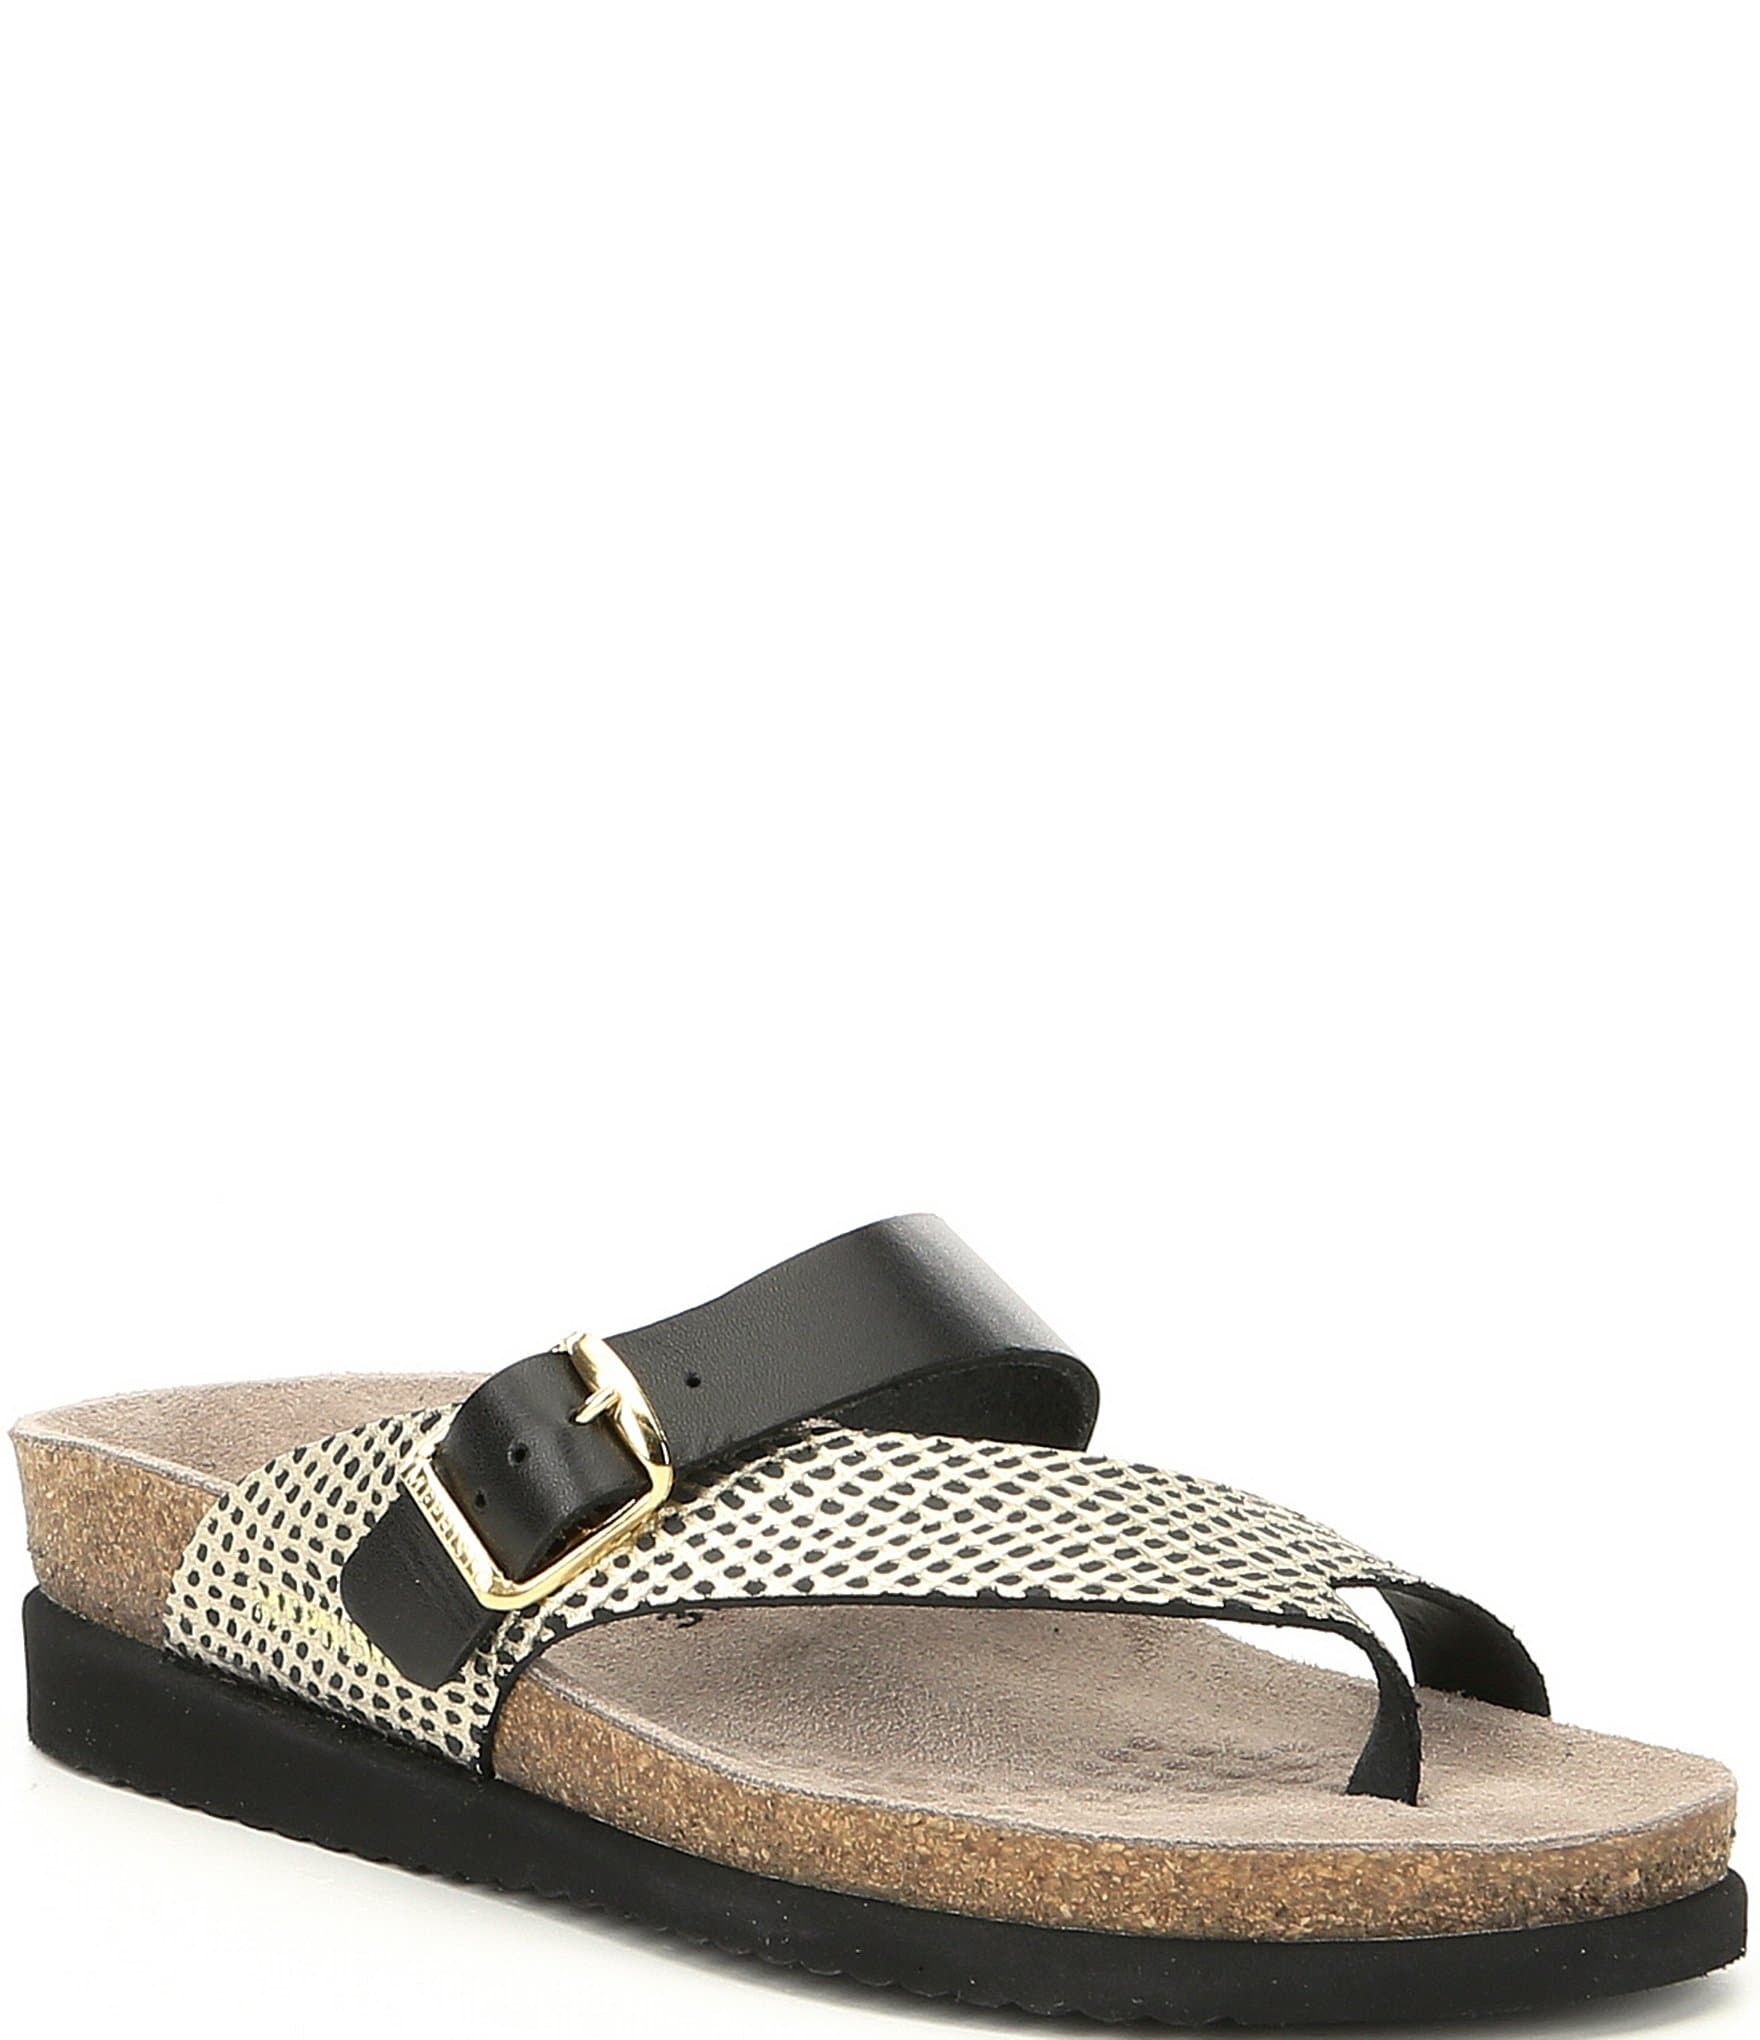 8314846a4560 Mephisto Helen Mix Footbed Thong Sandals